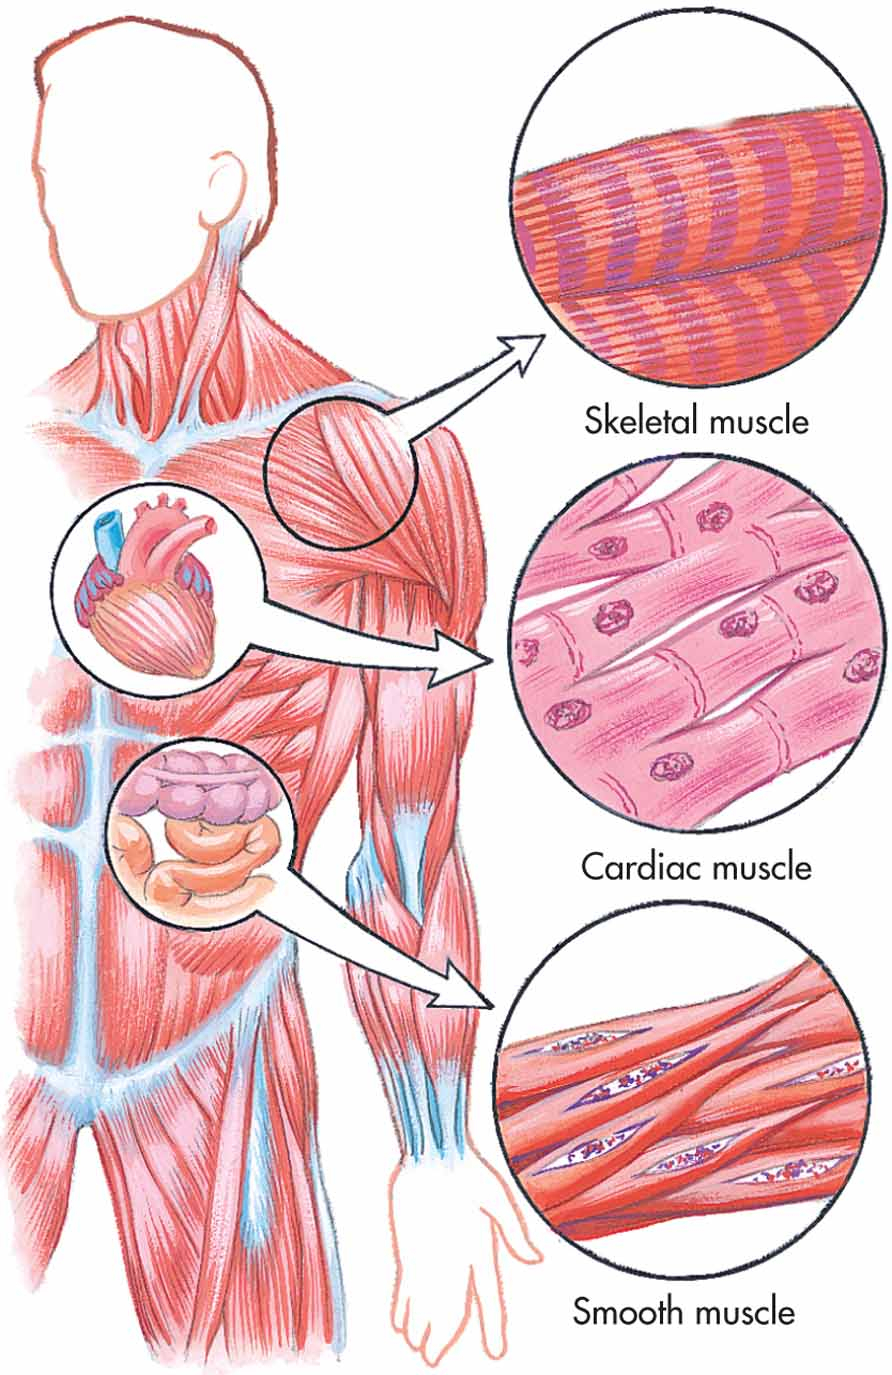 Muscle Tissue Drawing At Free For Personal Use Diagram Showing All Of The Muscles In A Chicken Wing 892x1375 Types Easy To Draw Diagrams Labeled Skeletal